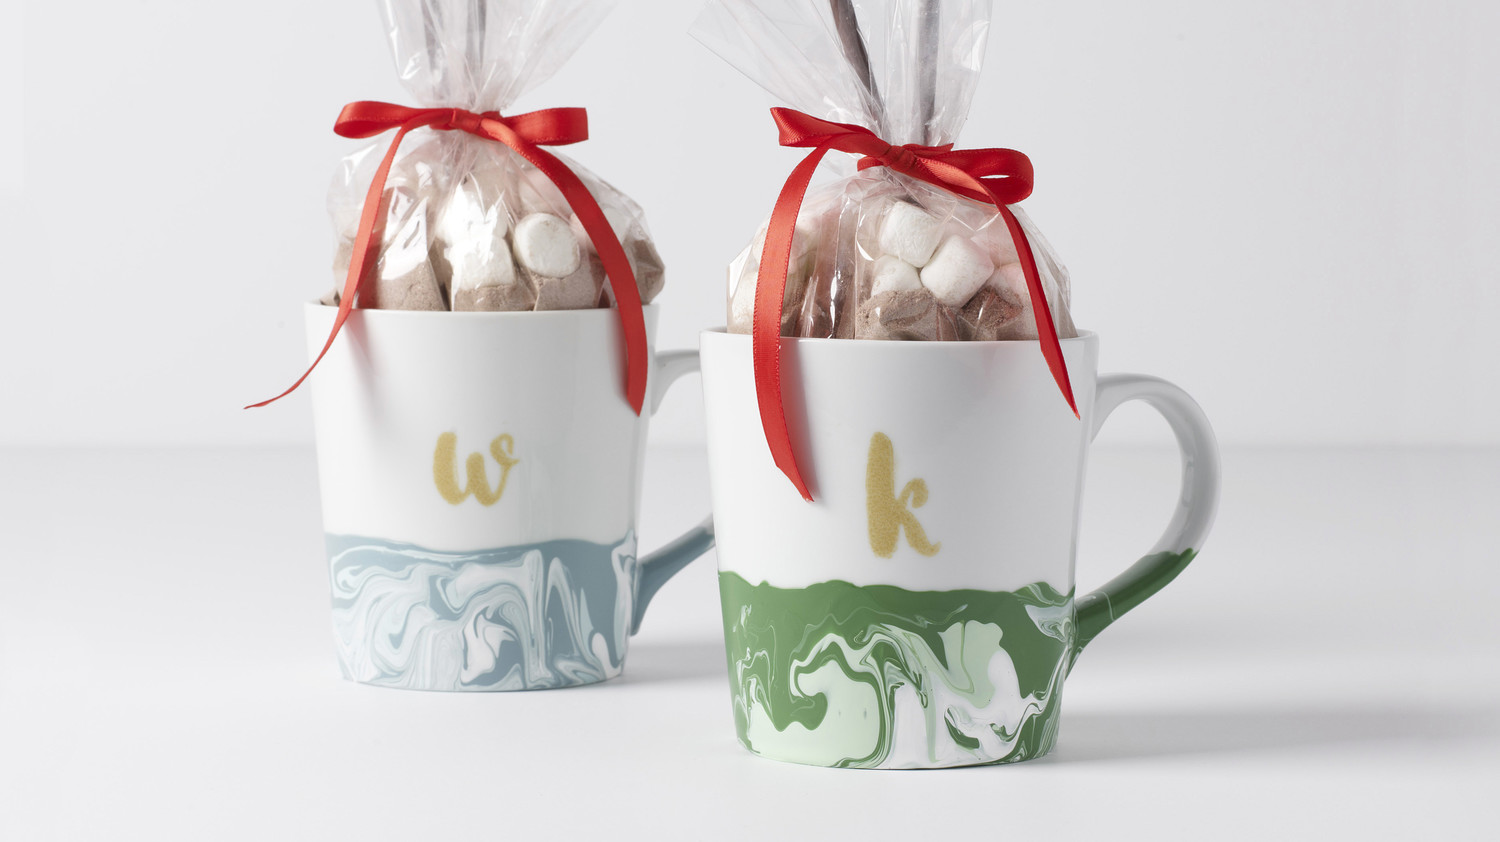 Marbleized Monogram Gift Mugs